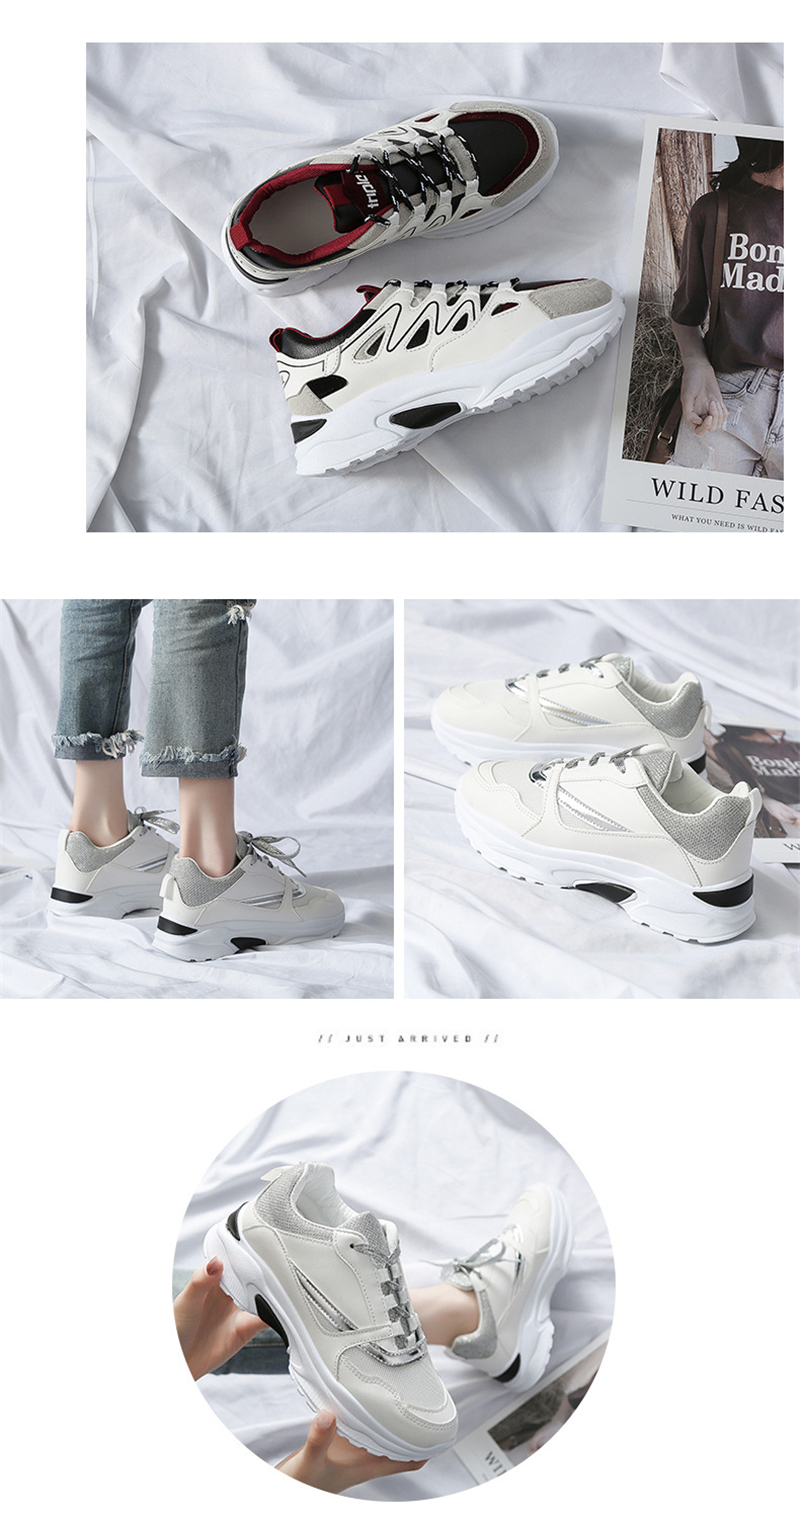 Spring Summer New Fashion Women's Vulcanize Shoes Casual Platform Increased Women Shoes Sneakers Casual Shoes Women VT611 (4)